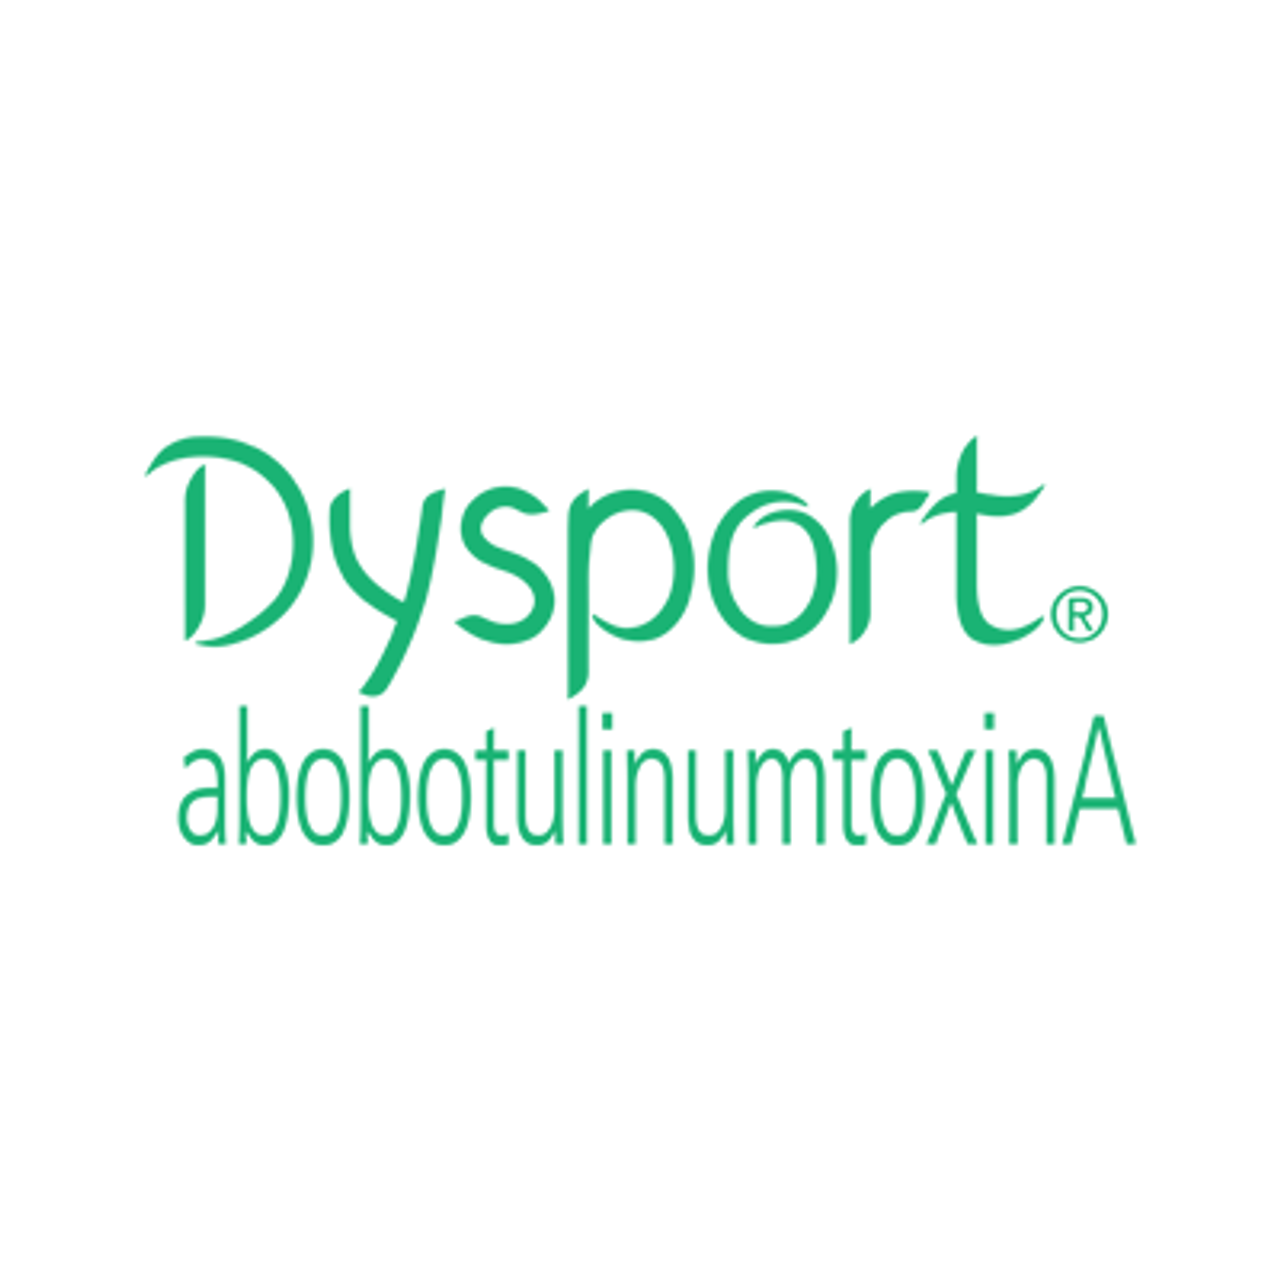 Dysport Bank Special